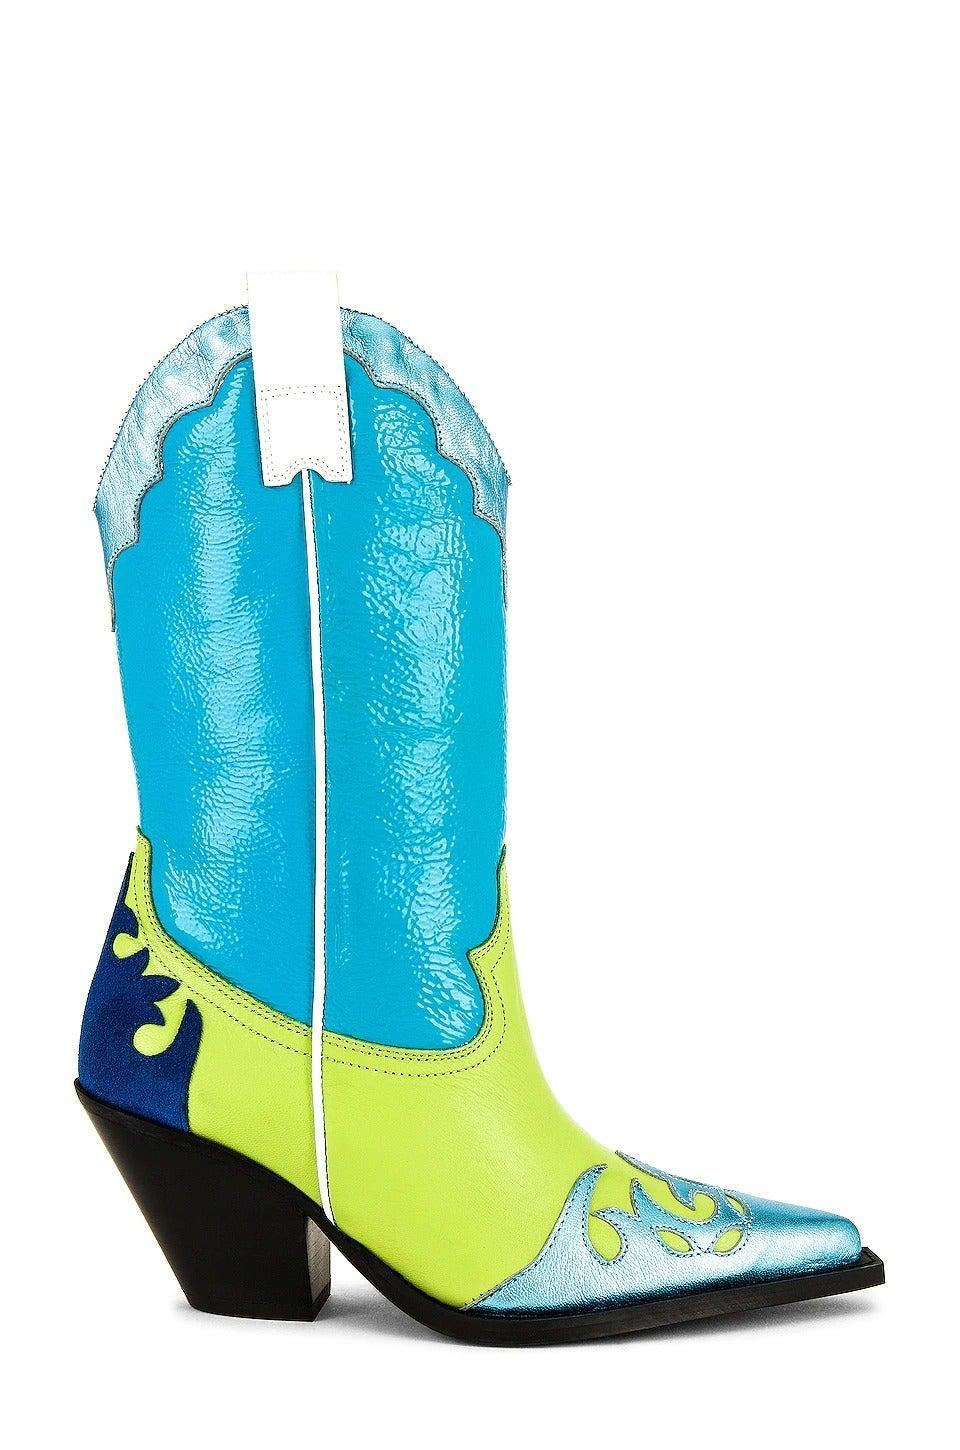 """<br><br><strong>Toral</strong> Western Boot, $, available at <a href=""""https://www.revolve.com/toral-western-boot/dp/TRAL-WZ25/?size=36"""" rel=""""nofollow noopener"""" target=""""_blank"""" data-ylk=""""slk:Revolve"""" class=""""link rapid-noclick-resp"""">Revolve</a>"""